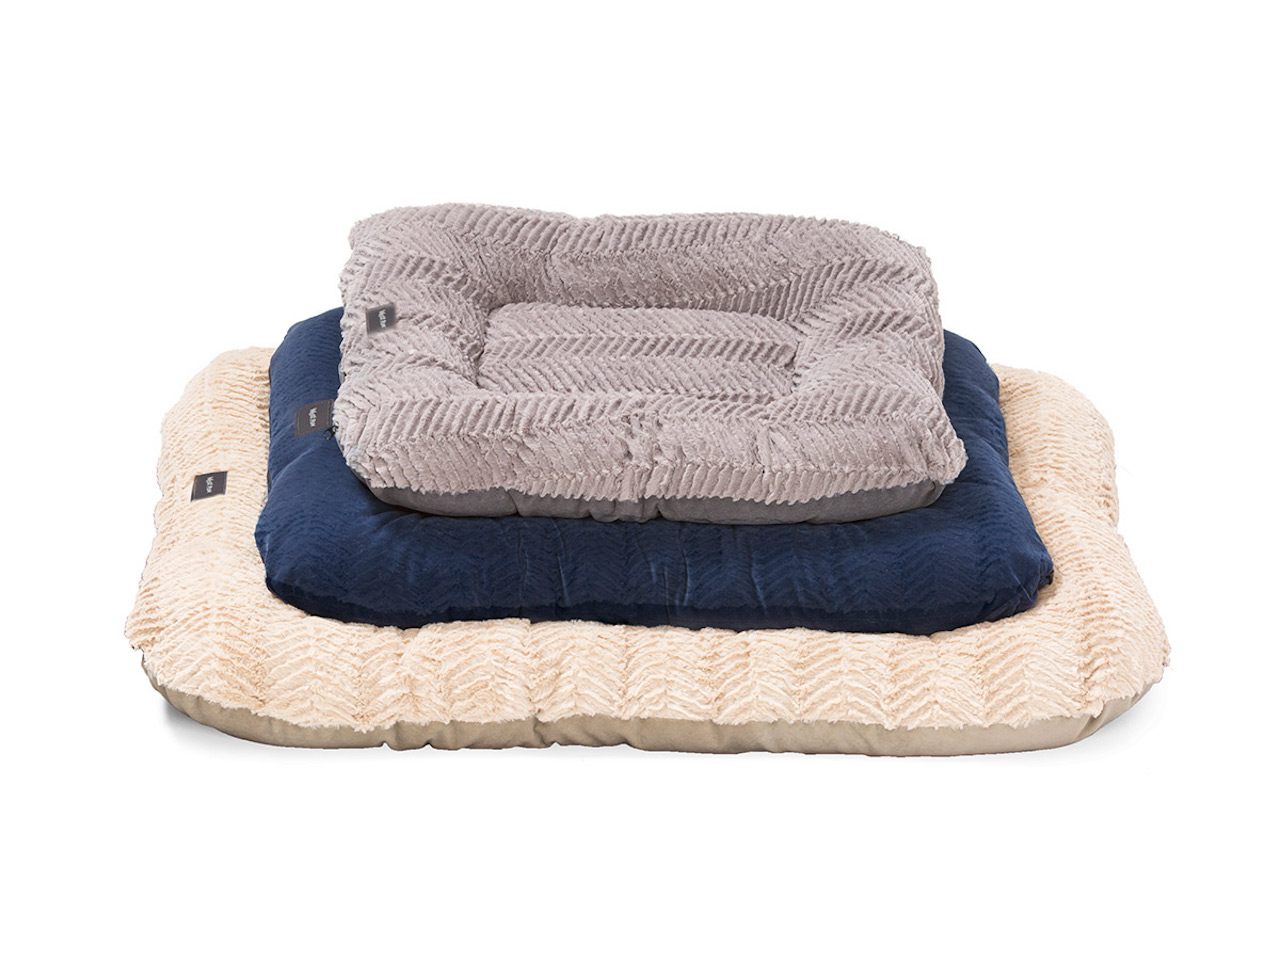 Eco-Friendly Heyday Dog Bed from West Paw